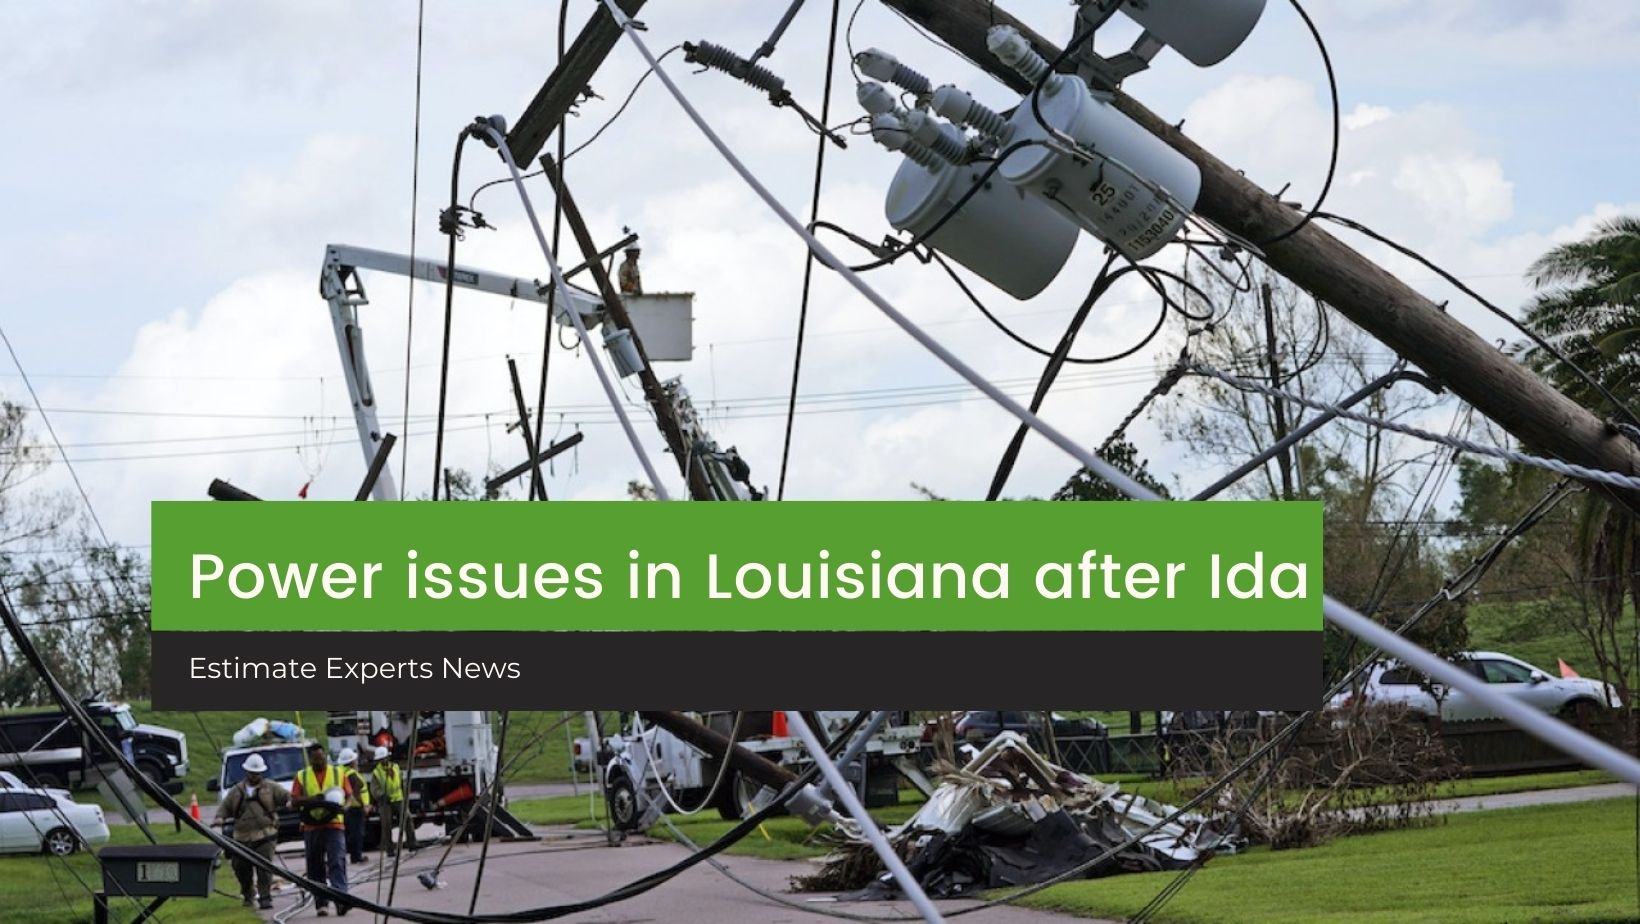 Power issues in Louisiana after Ida